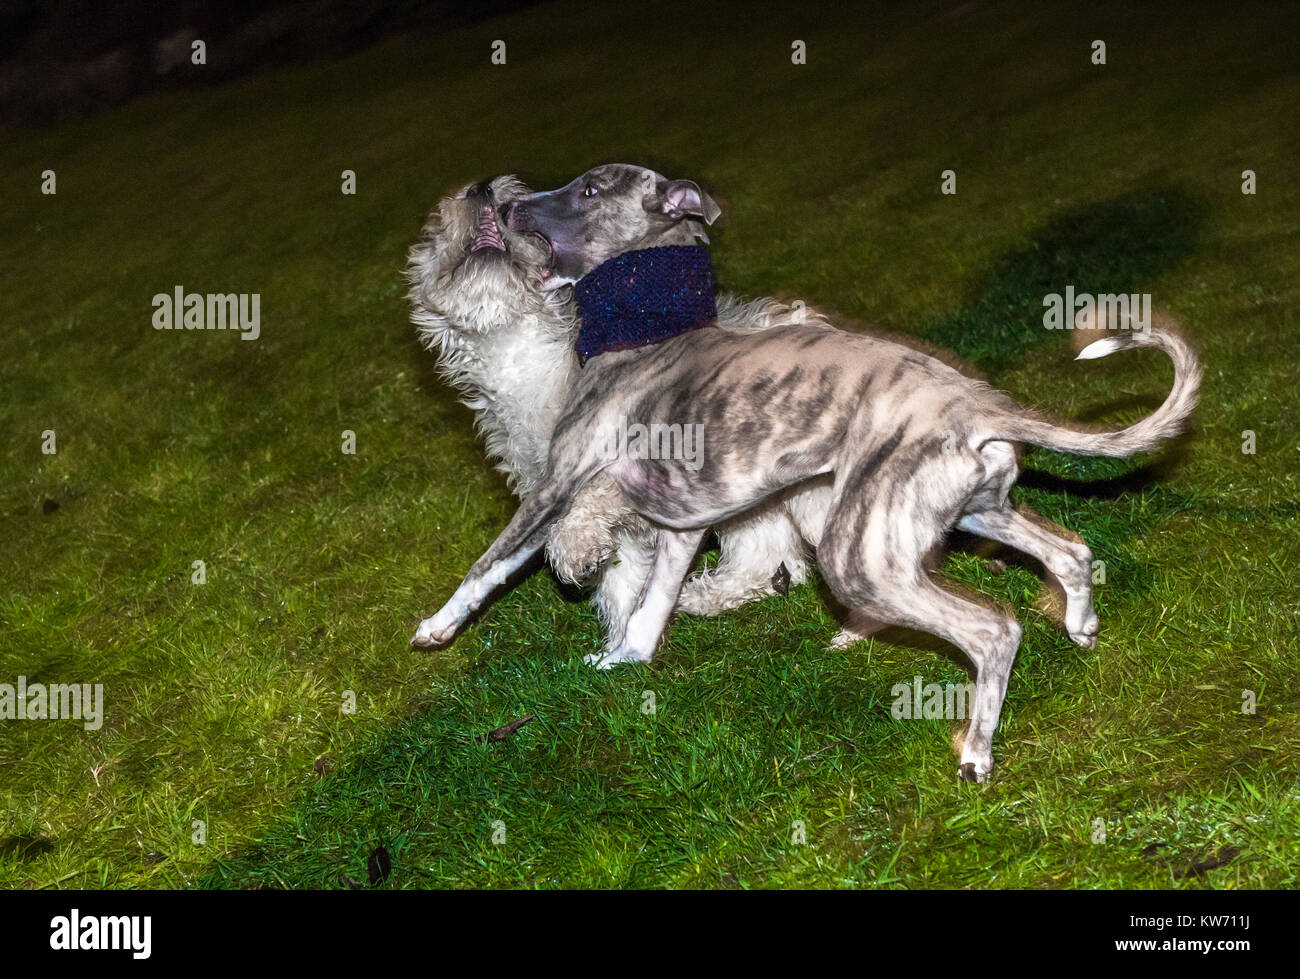 Whippet and Cockerpoo puppies play fighting. Stock Photo